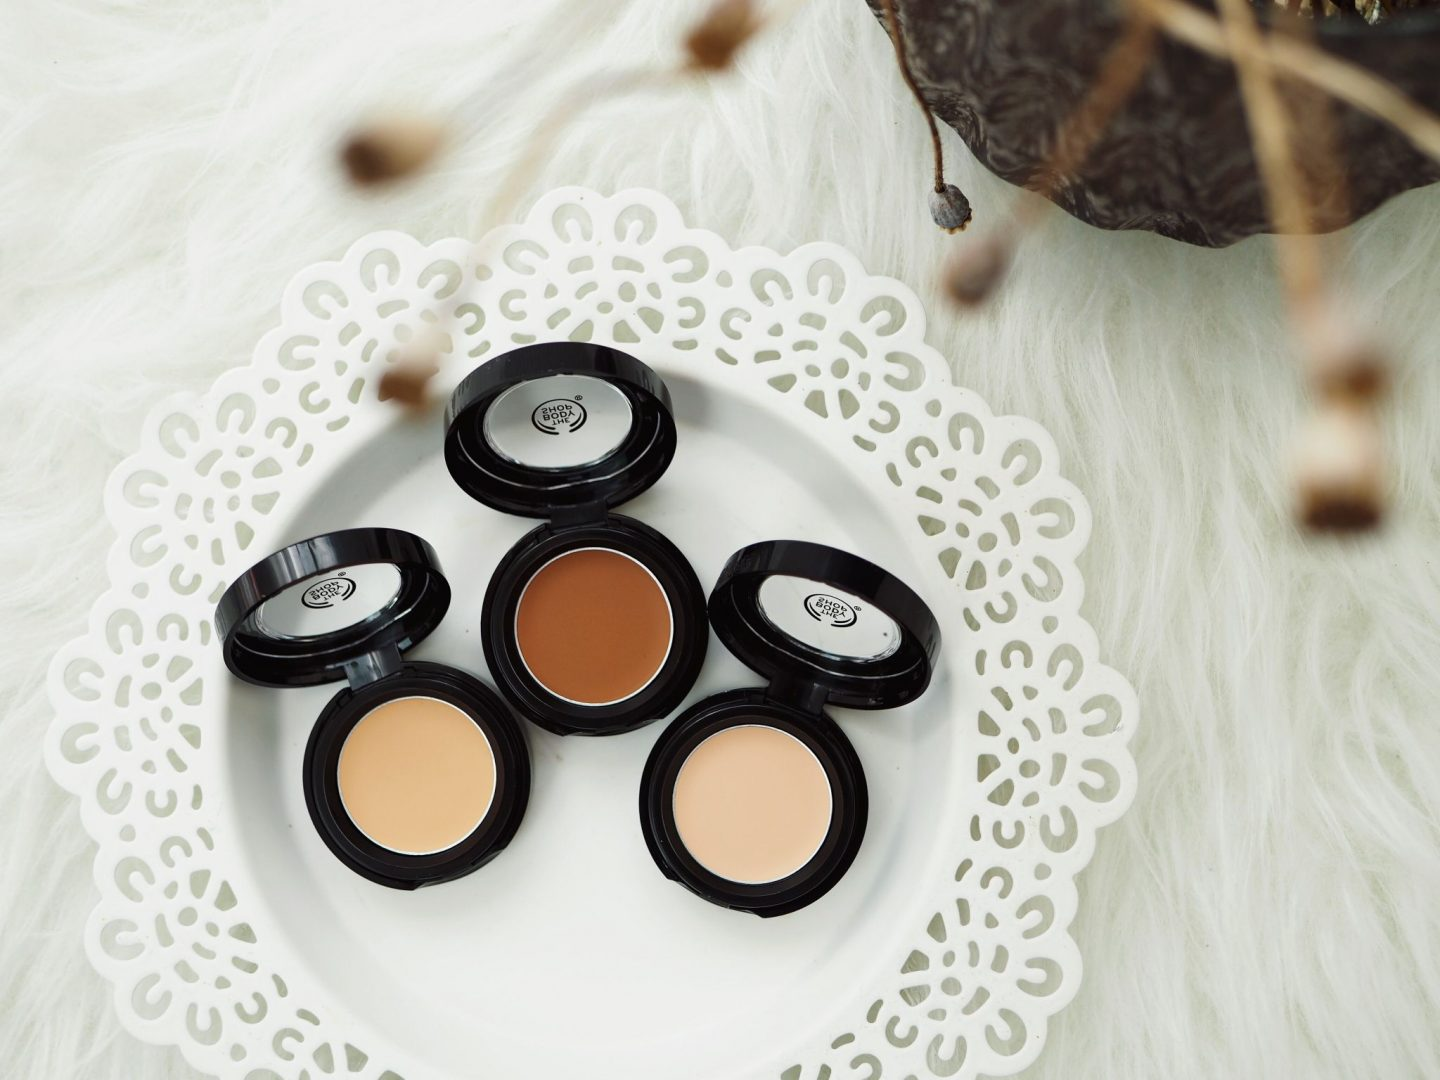 The Body Shop Matte Clay Concealer